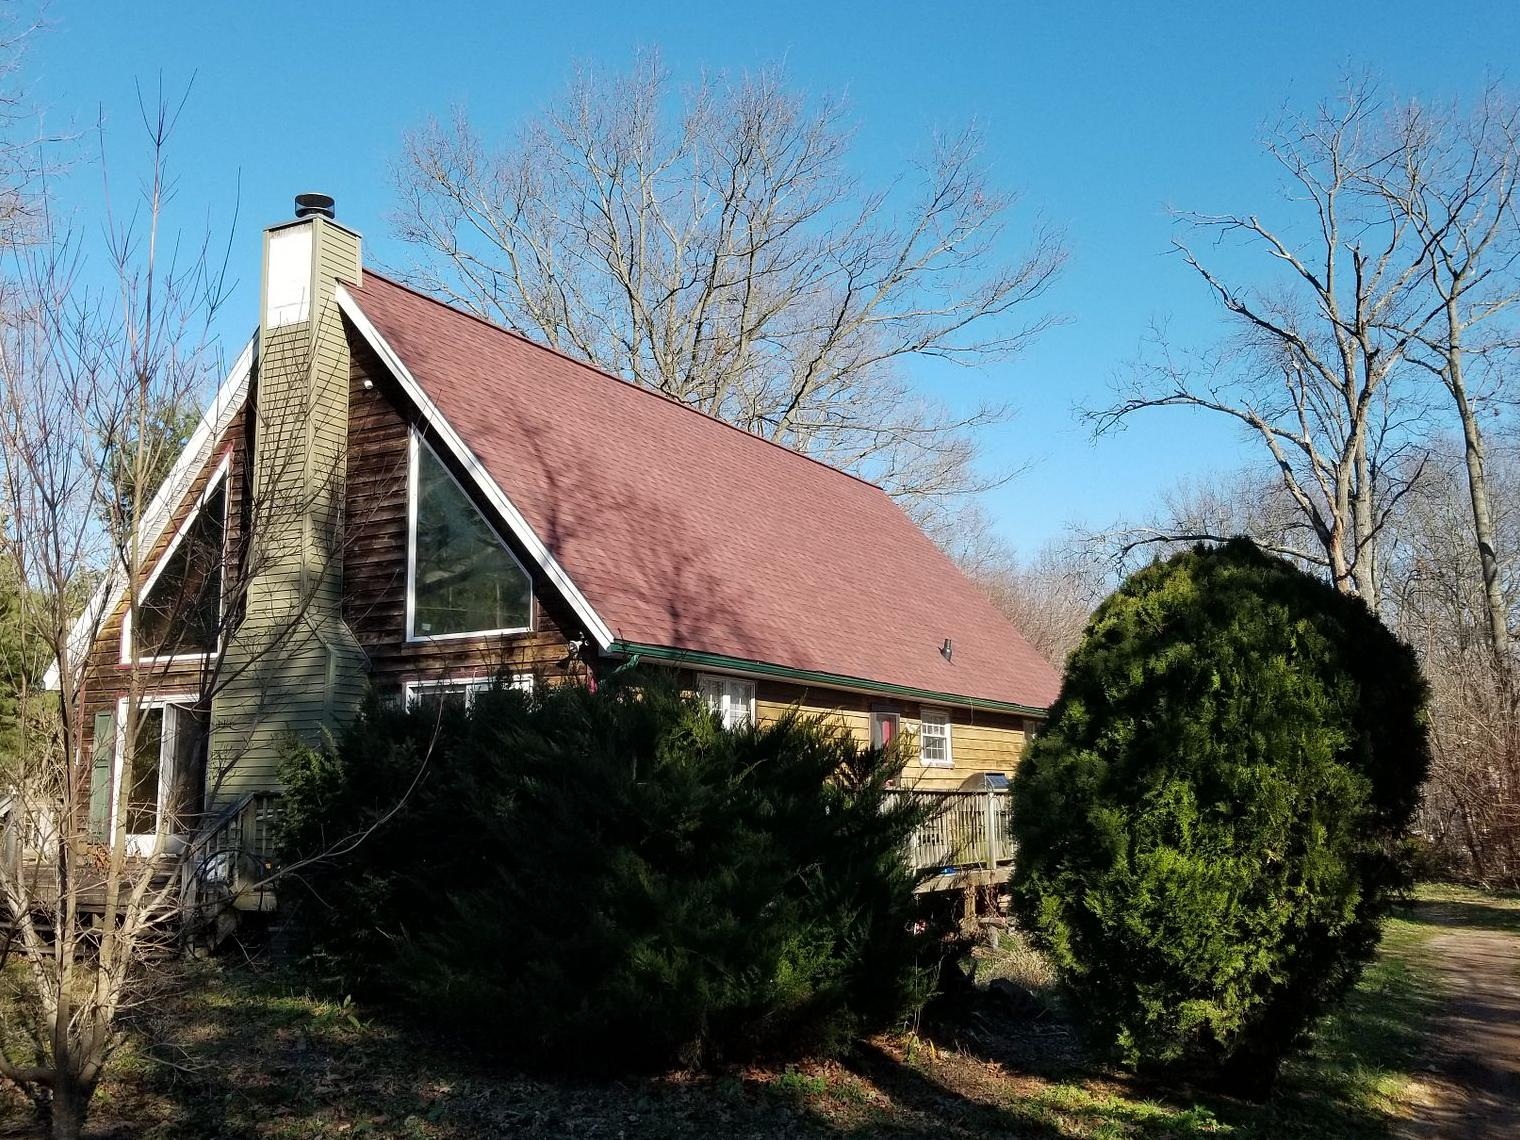 Roof Replacement in Millville New Jersey, 08332 - After Photo